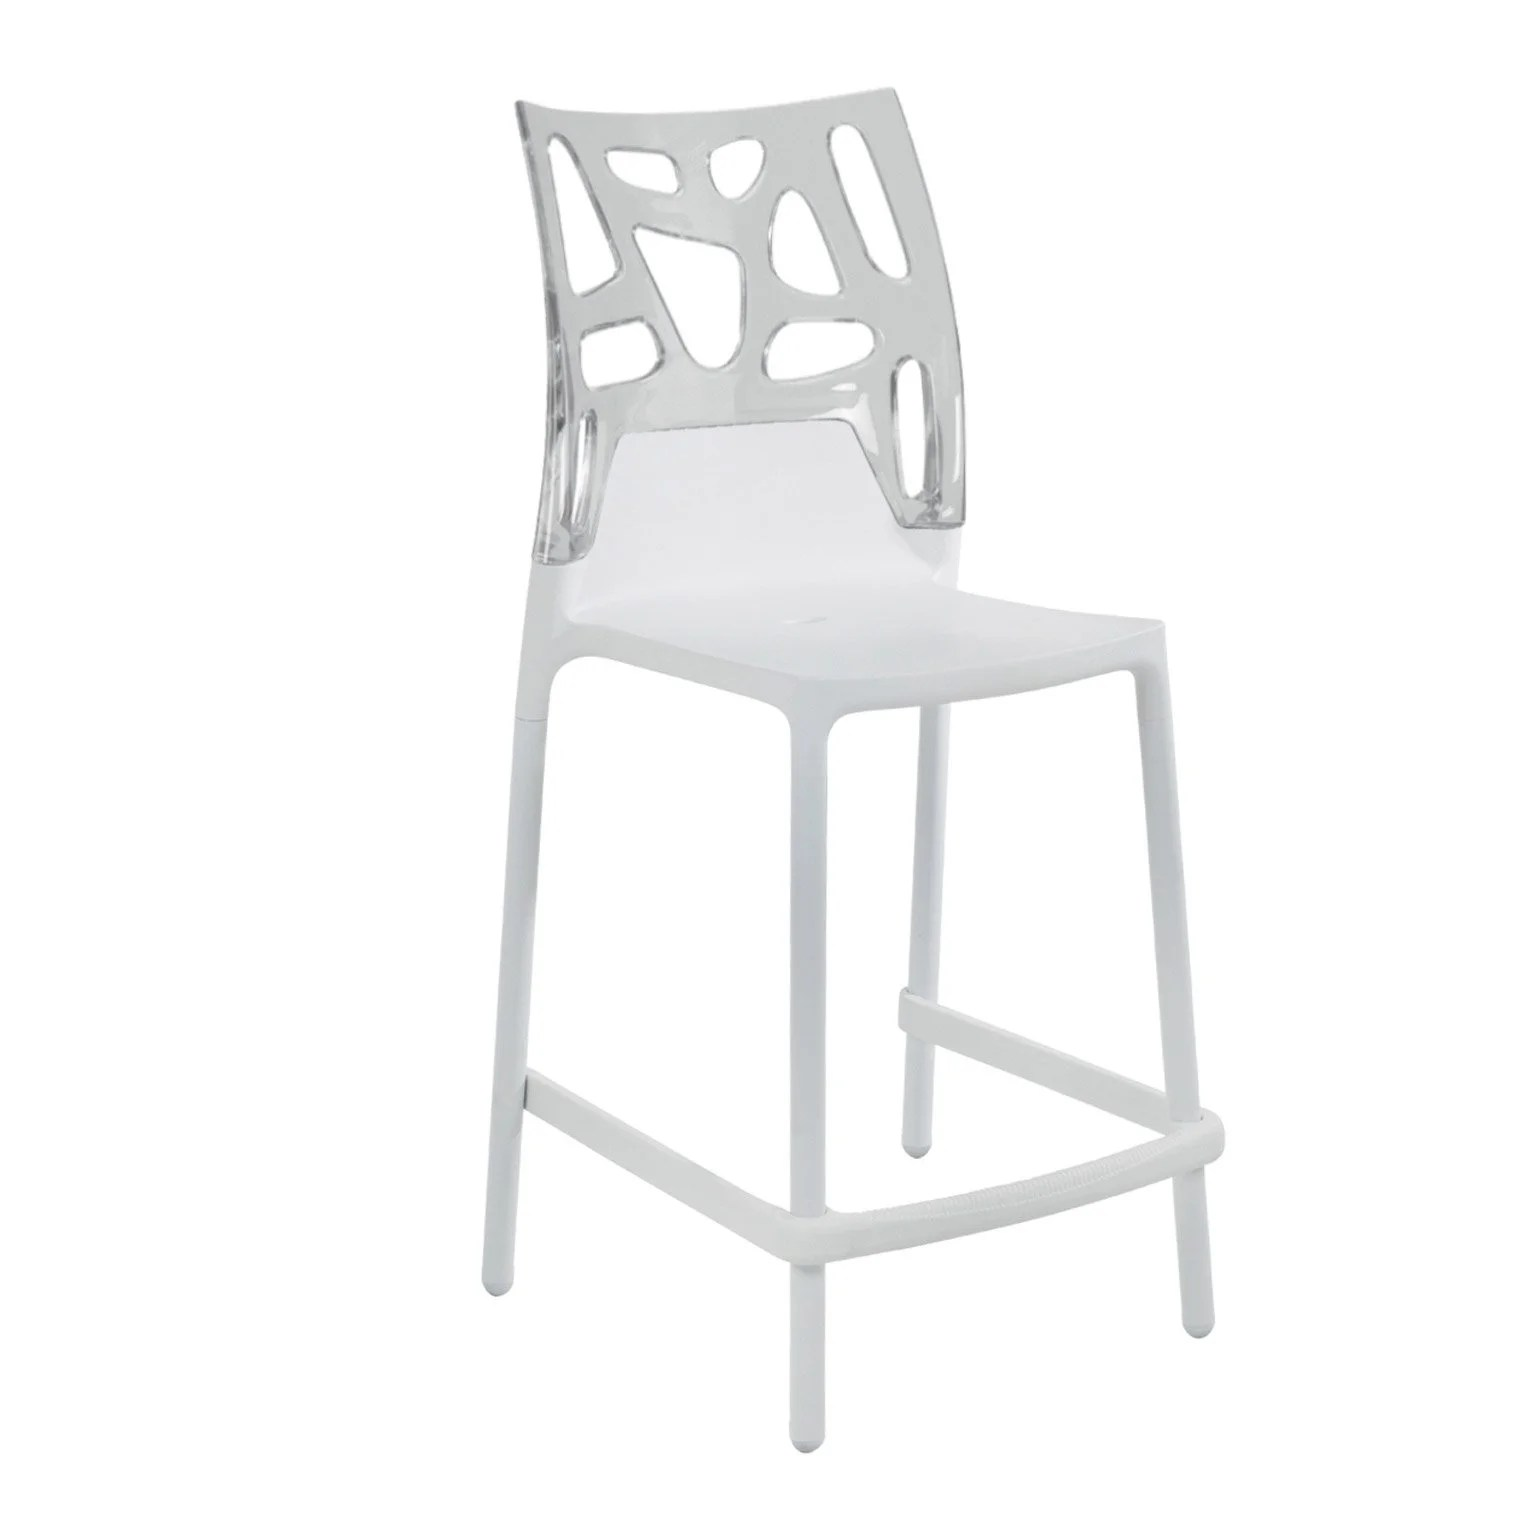 Tabouret De Bar Plastique Transparent Tabouret De Bar Design Plastique Transparent Vickie